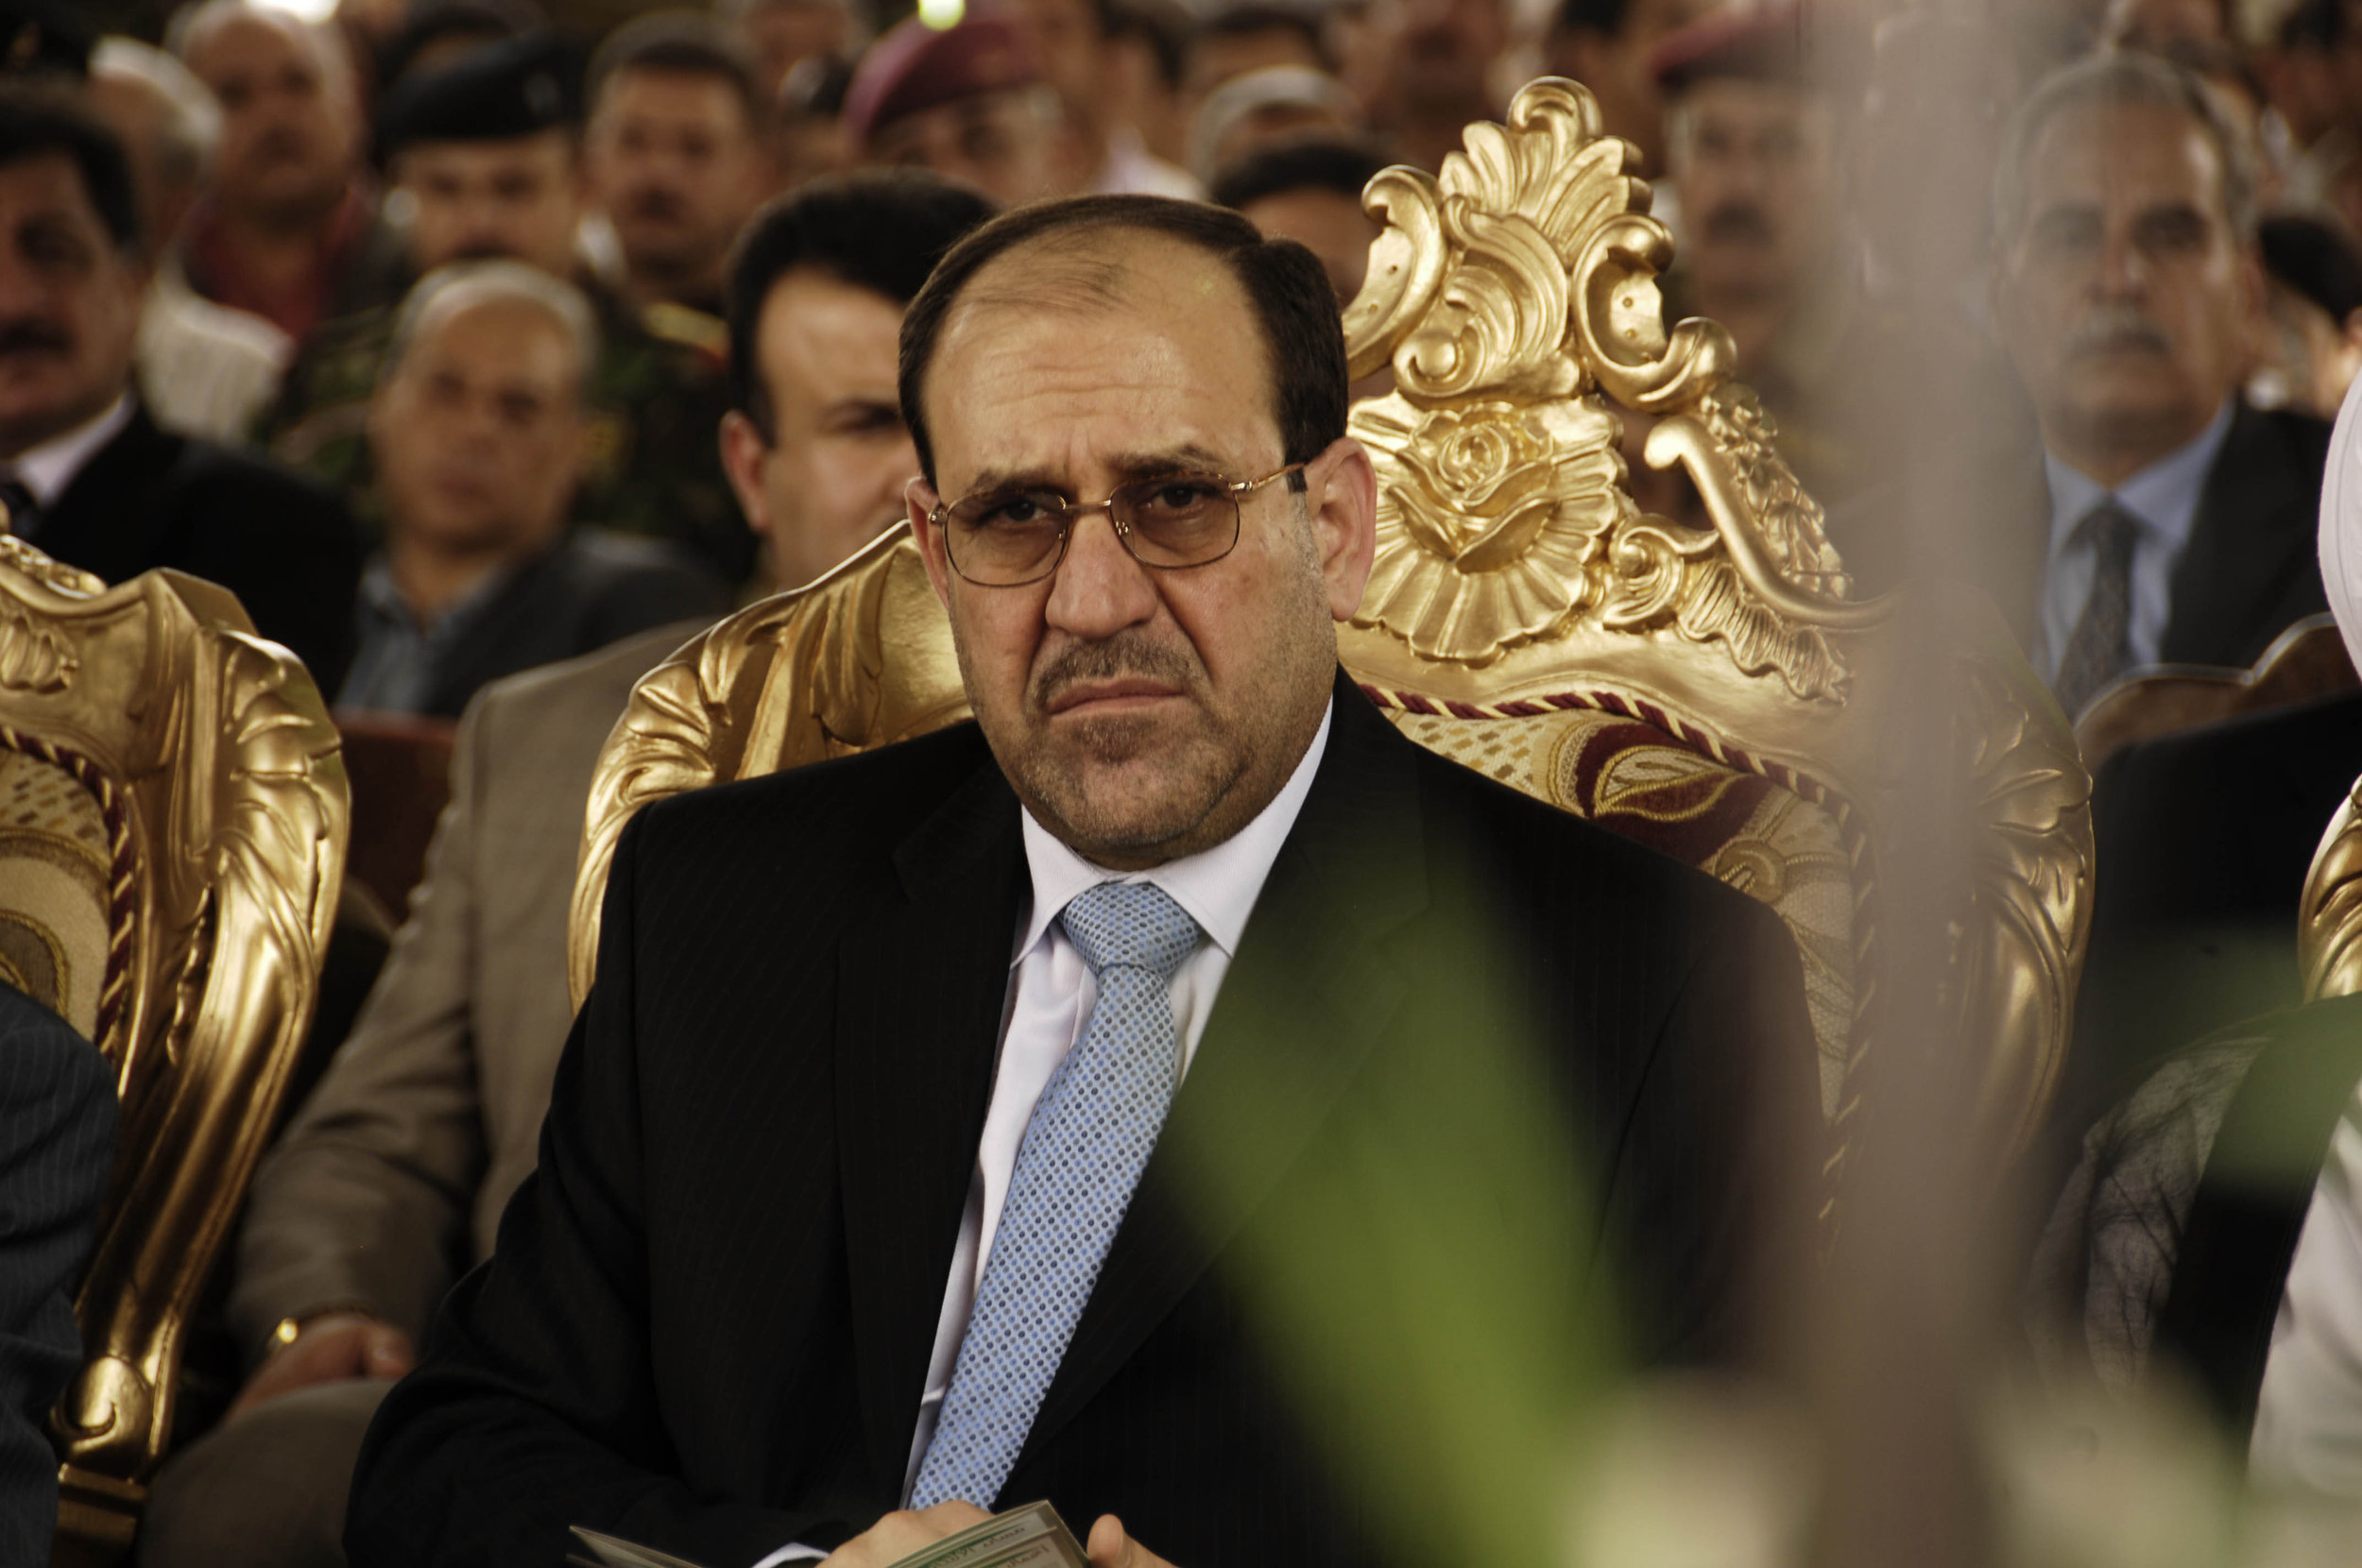 Iraqi politician Nouri Al-Maliki denounced the new channel as an interference in Iraqi affairs. (Wikimedia Commons)